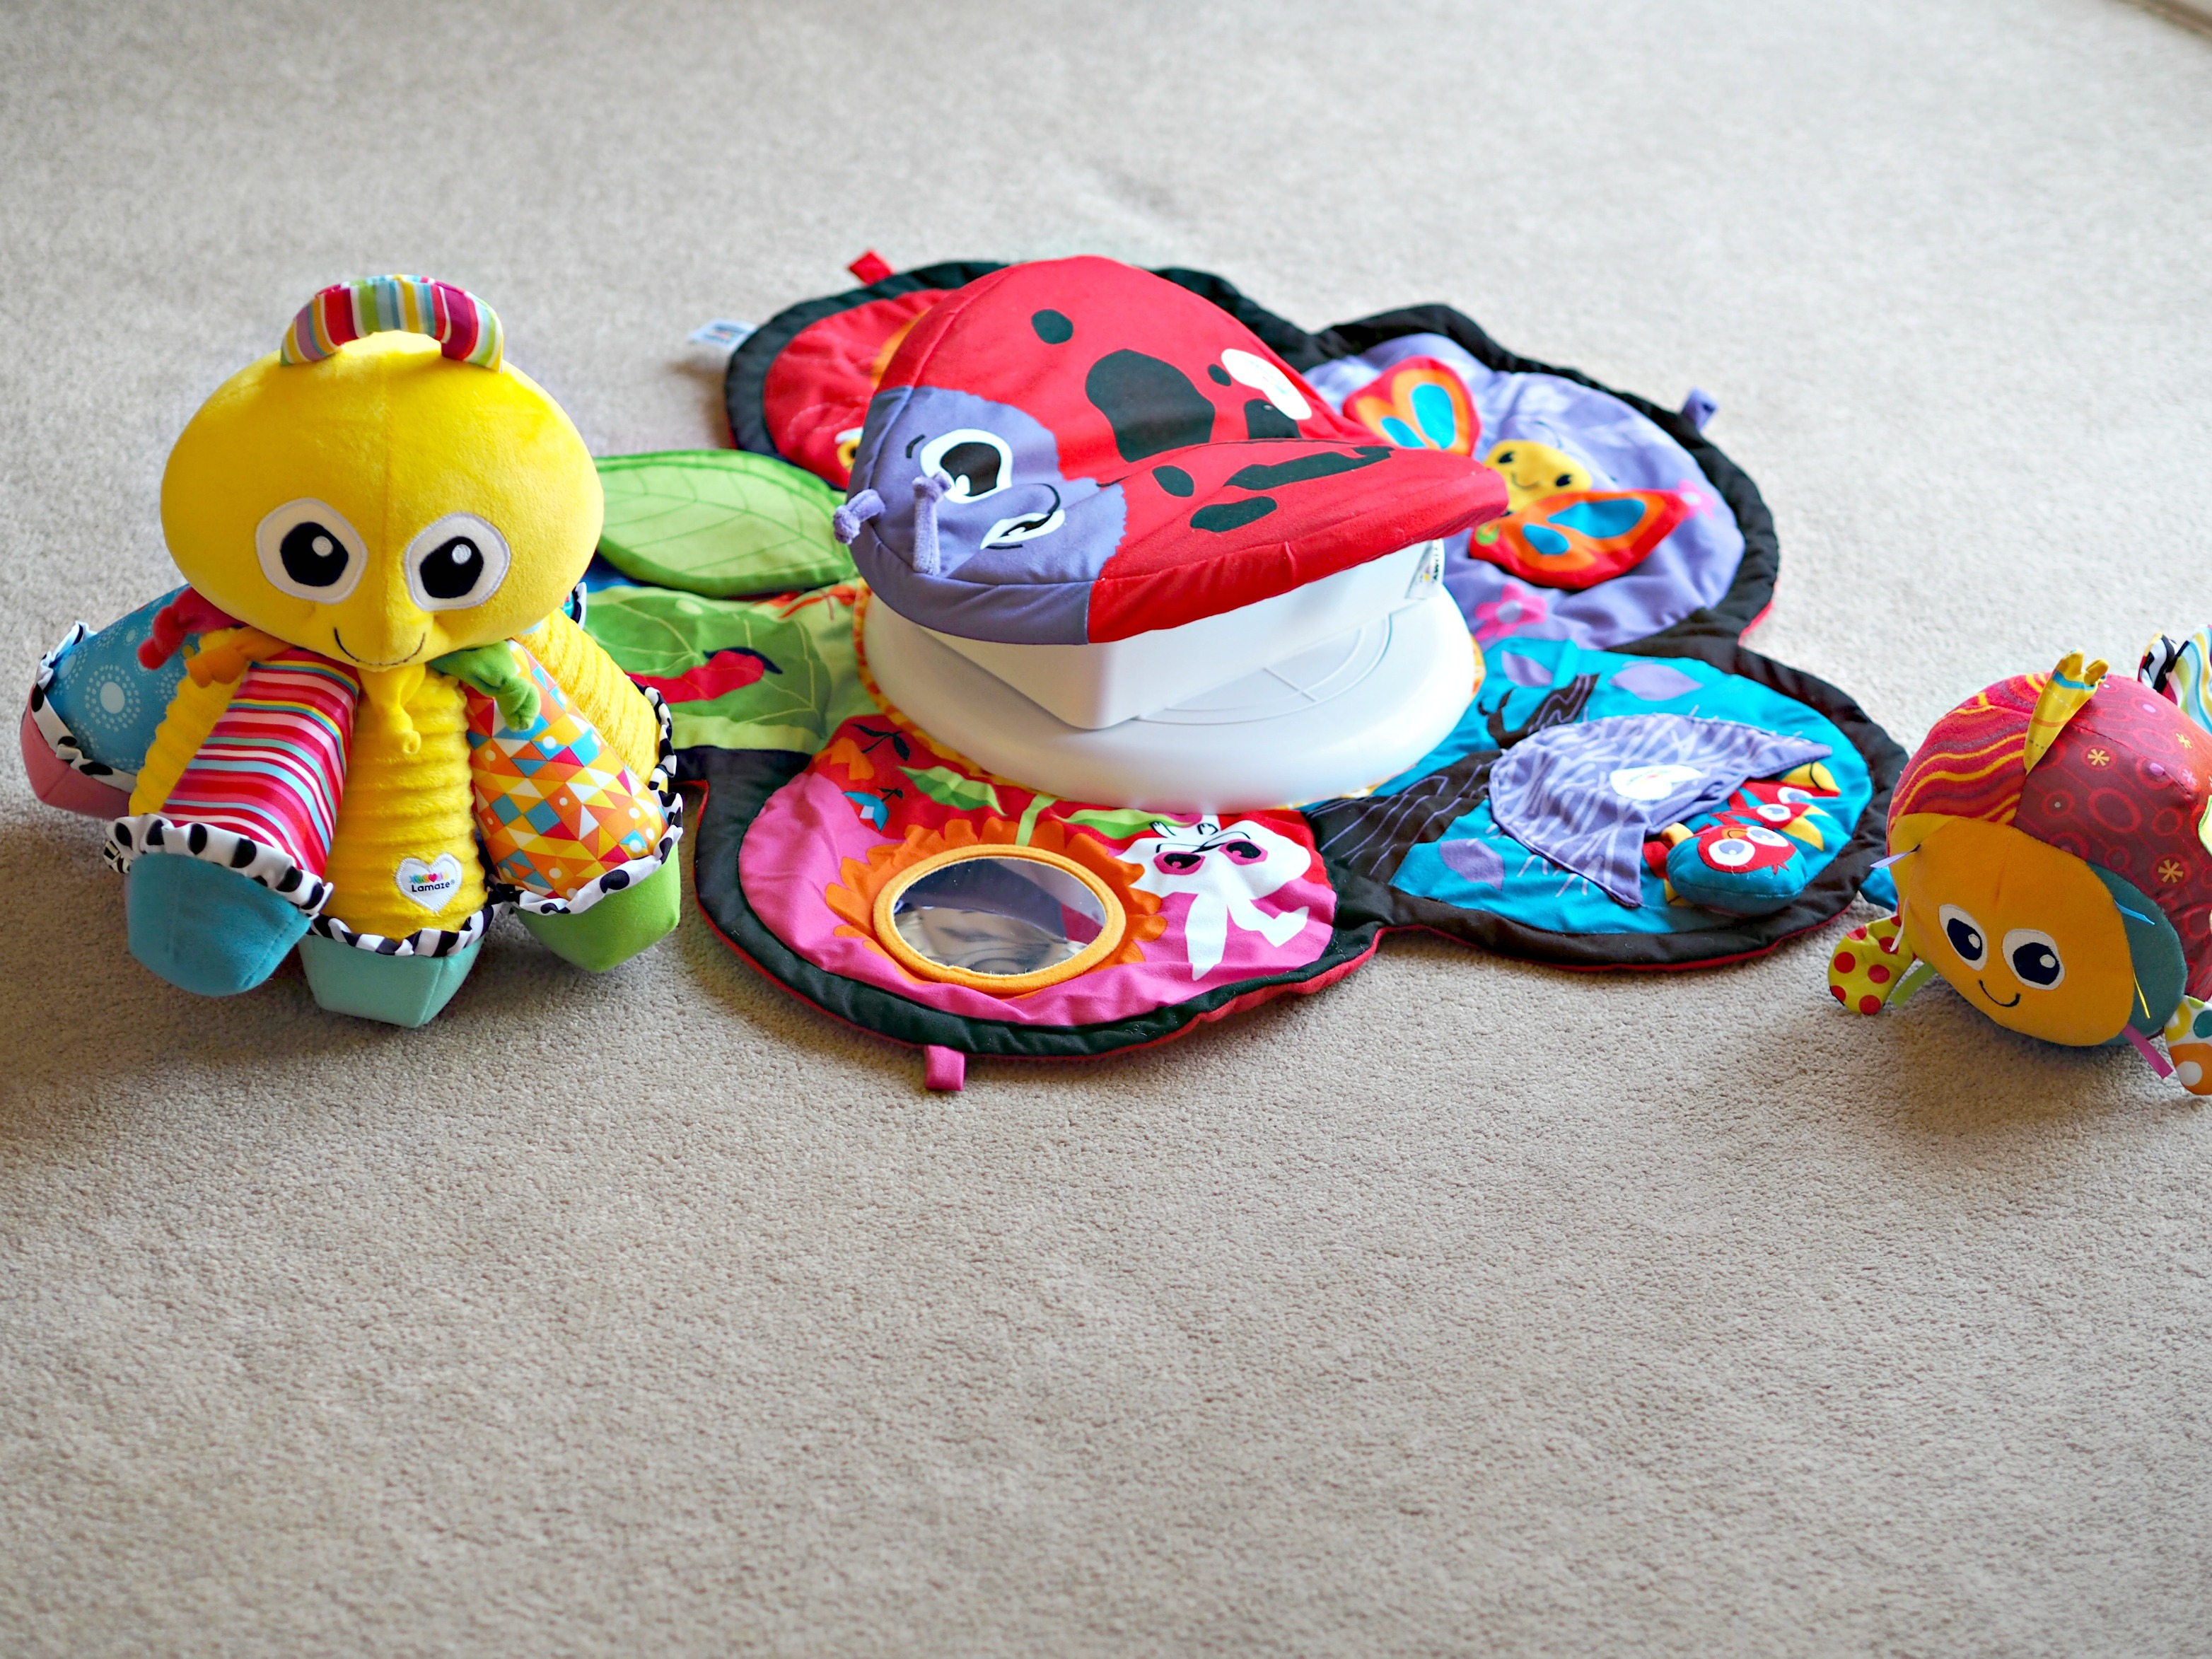 Encouraging Baby's Development with Tomy Lamaze - items for review